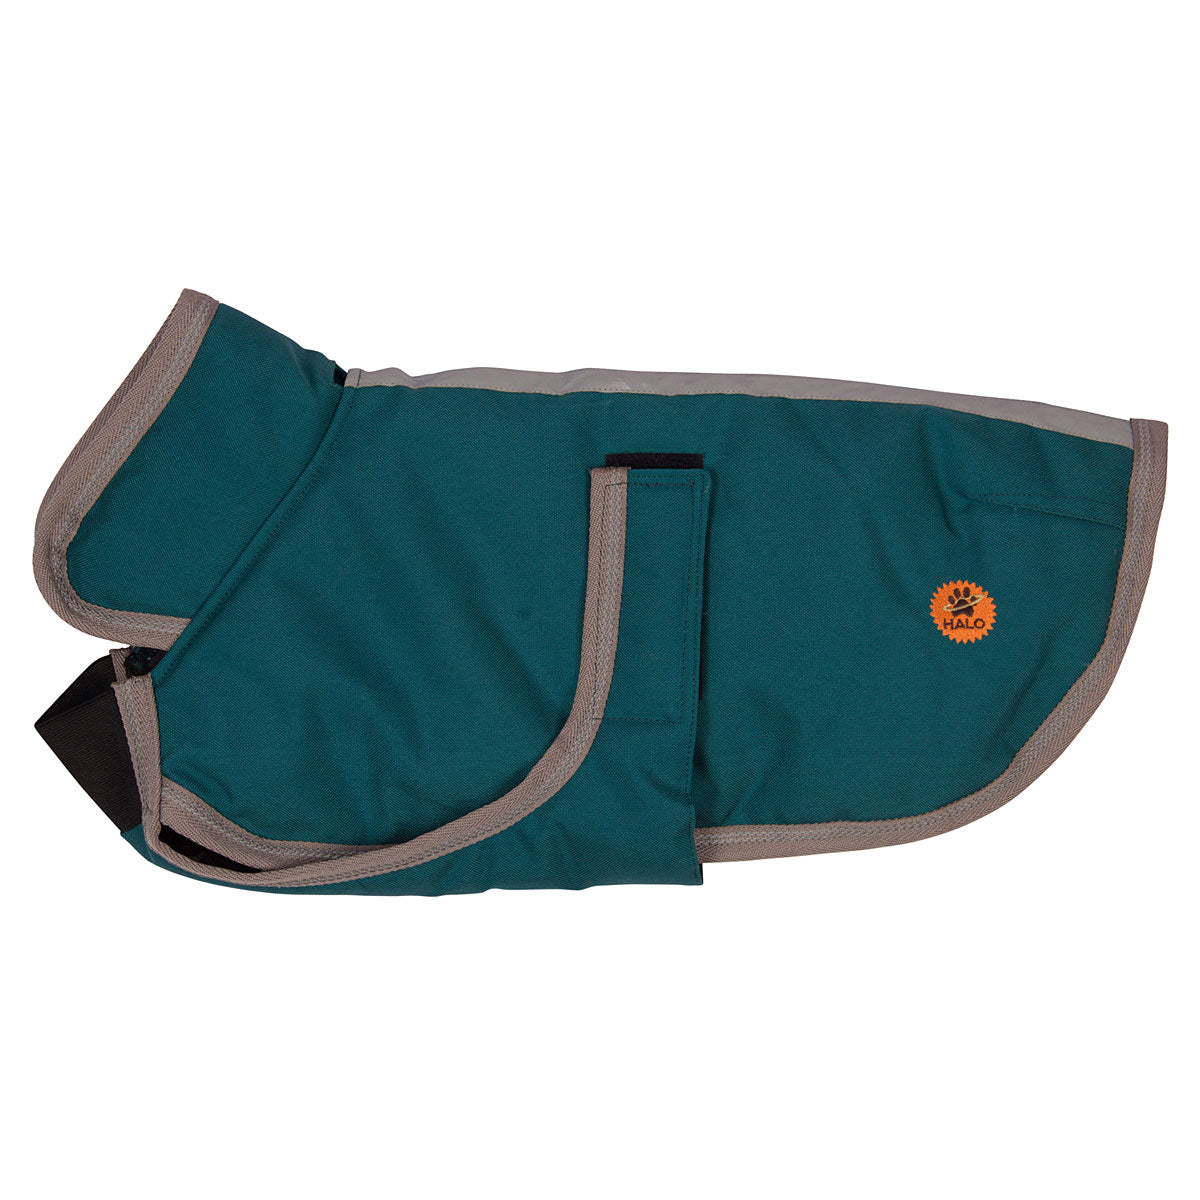 Halo Major Dog Coat with Collar_1